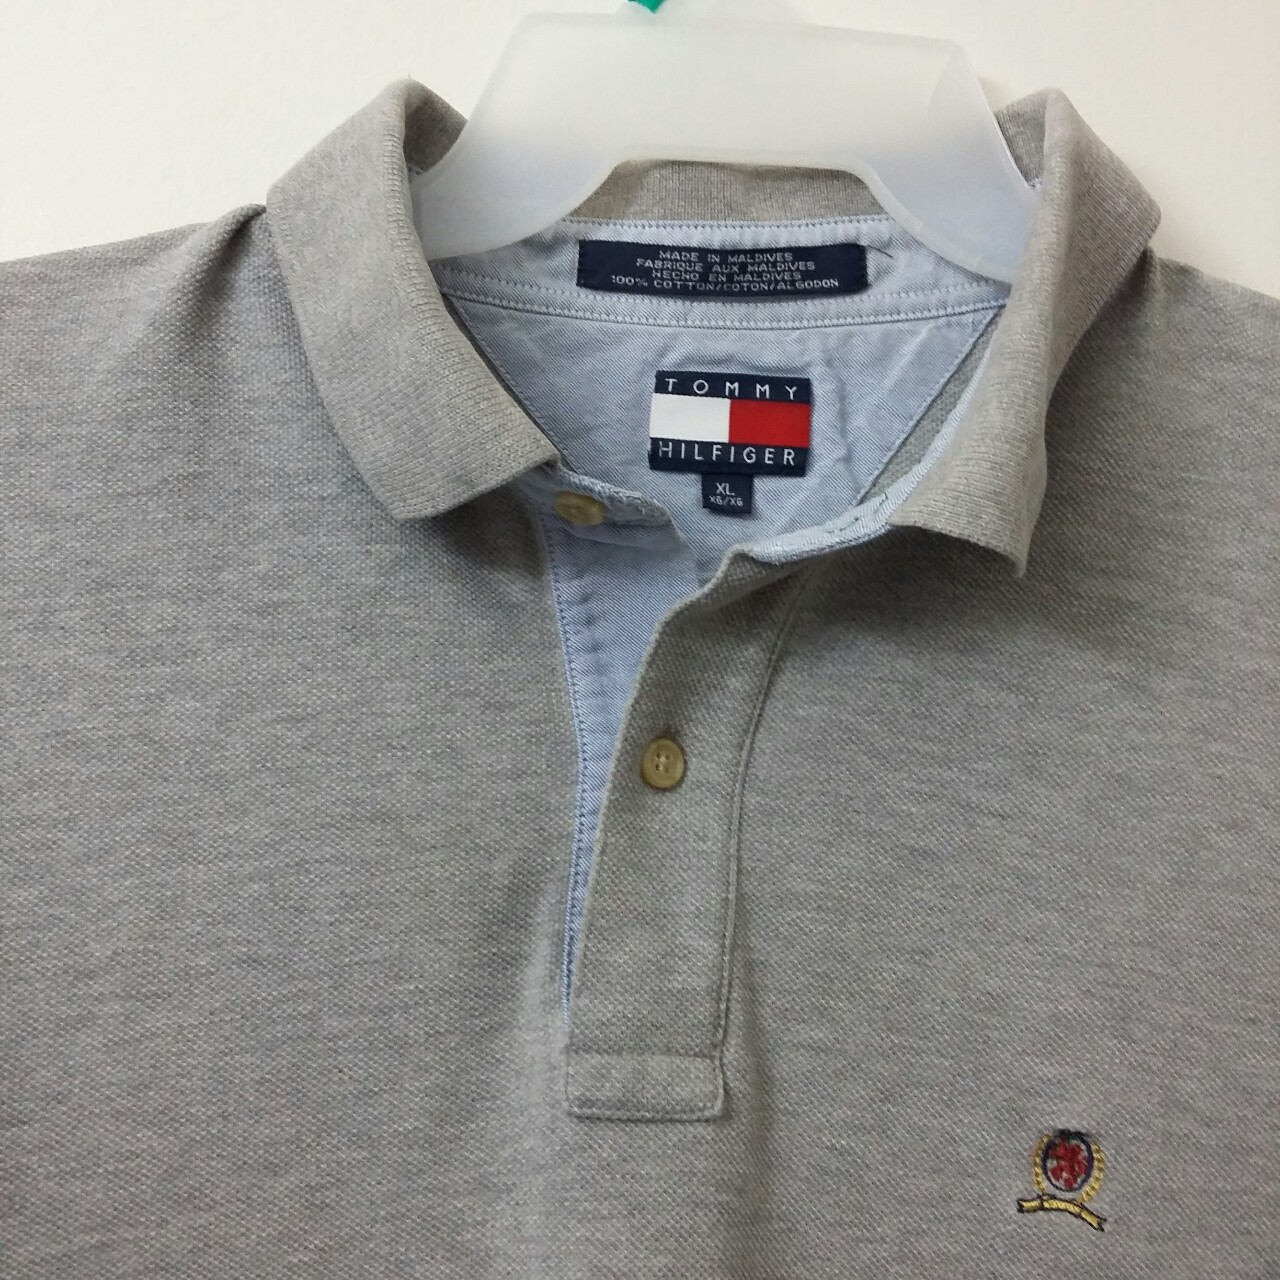 e4f29eb06 @jmiller6789. last year. Raleigh, Wake County, United States. Tommy  Hilfiger Vintage Polo Shirt